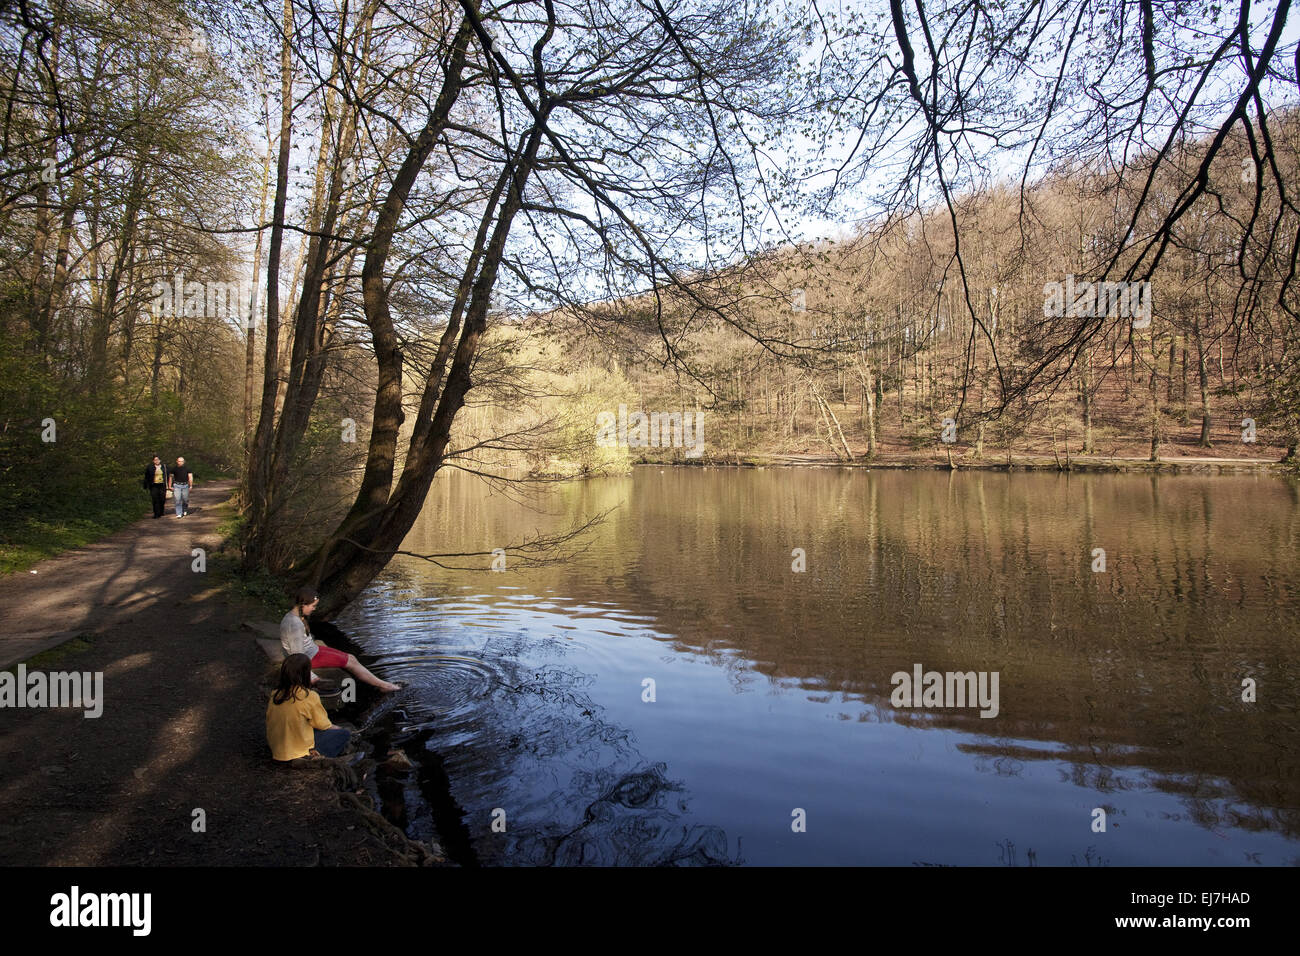 People on the hammer pond, Witten, Germany - Stock Image